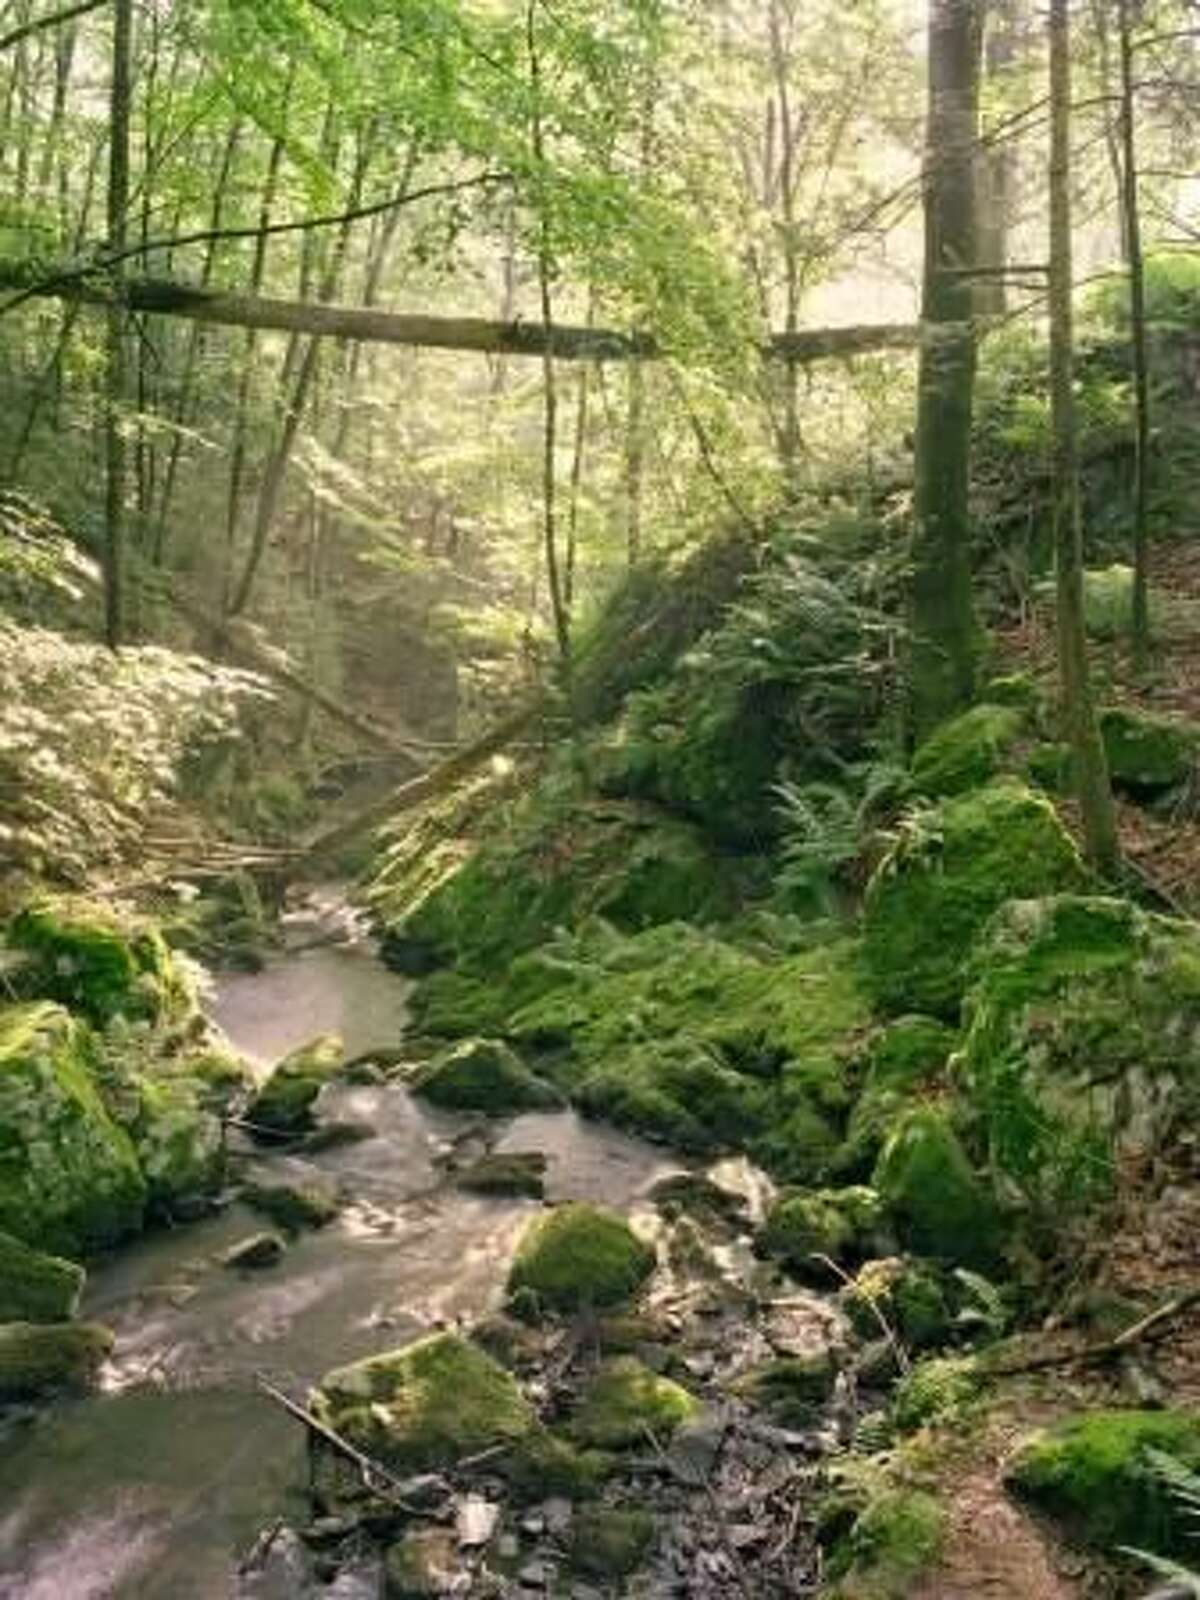 """The Bruce Museum's """"Mianus River Gorge: Photographs by William Abranowicz"""" exhibit features selected photos from Abranowicz that have captured the profound beauty and myriad faces of this primeval forest in our midst. It runs now through June 5.Find out more:http://bit.ly/1TmMCRz"""